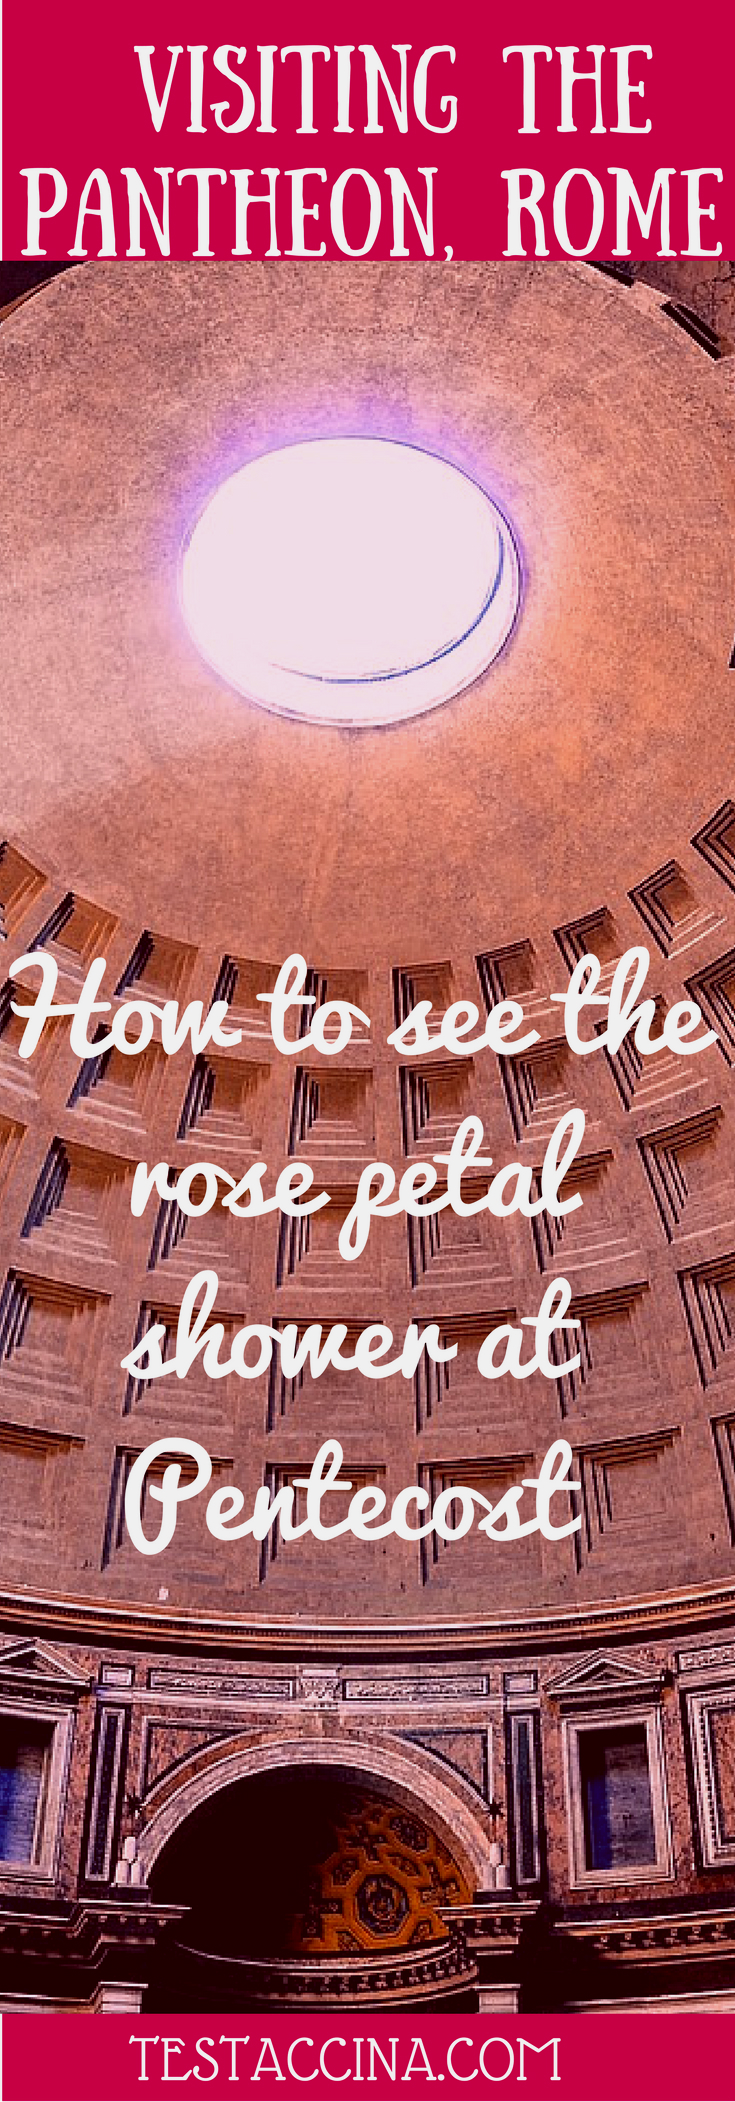 How to see the rose petal shower in the Pantheon, Rome, at Pentecost. La pioggia della rose at the Pantheon in Rome, Italy.